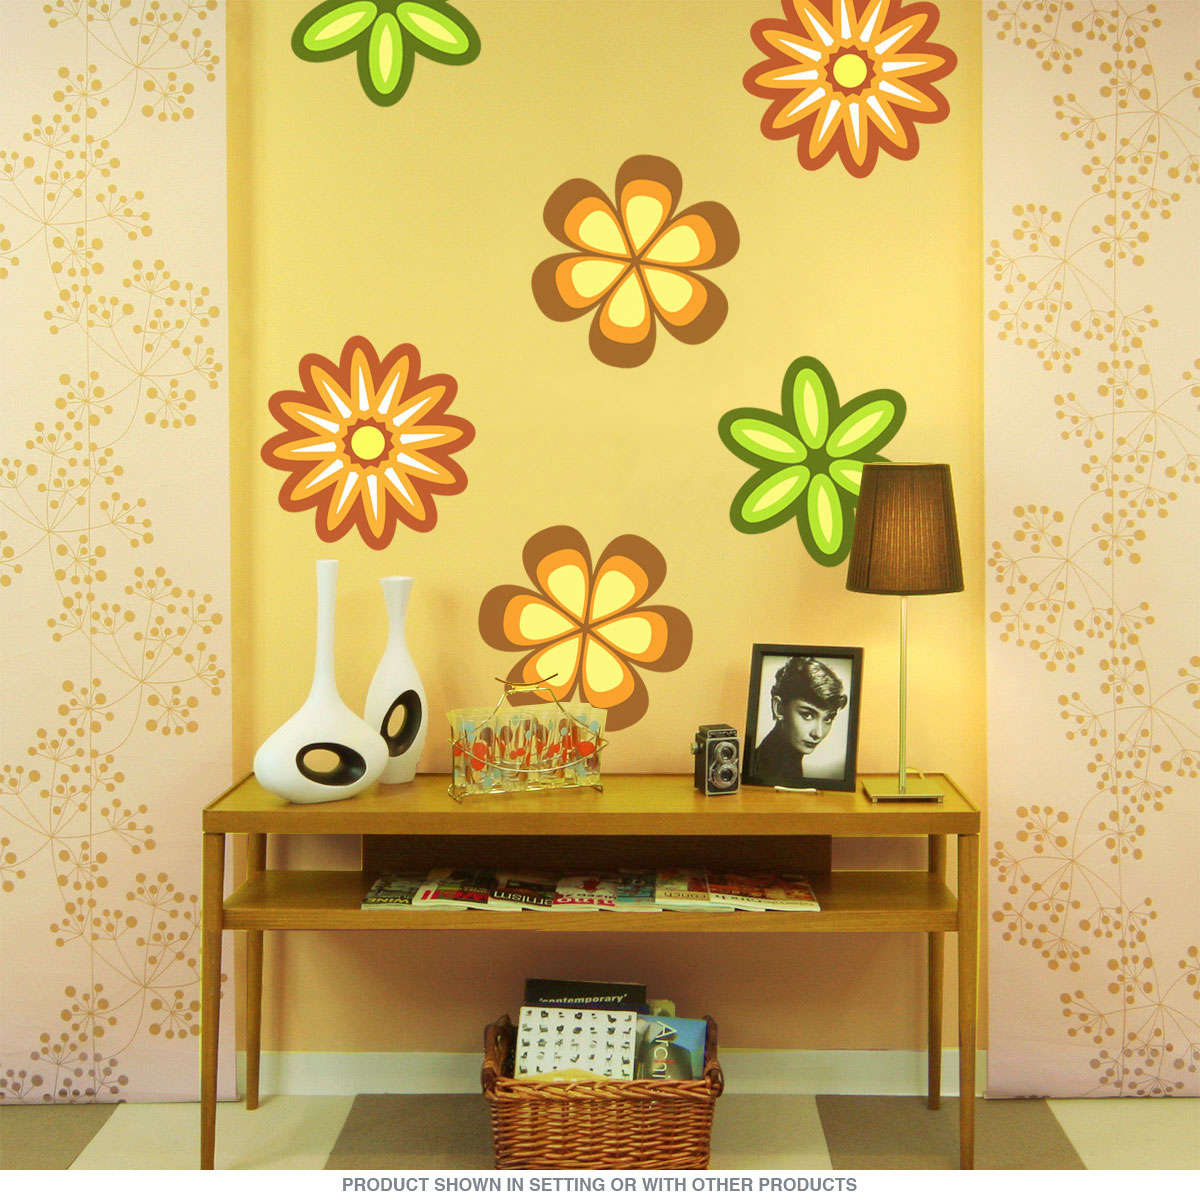 Mod Flower 70s Style Cutout Wall Decal Brown | Removable Wall ...